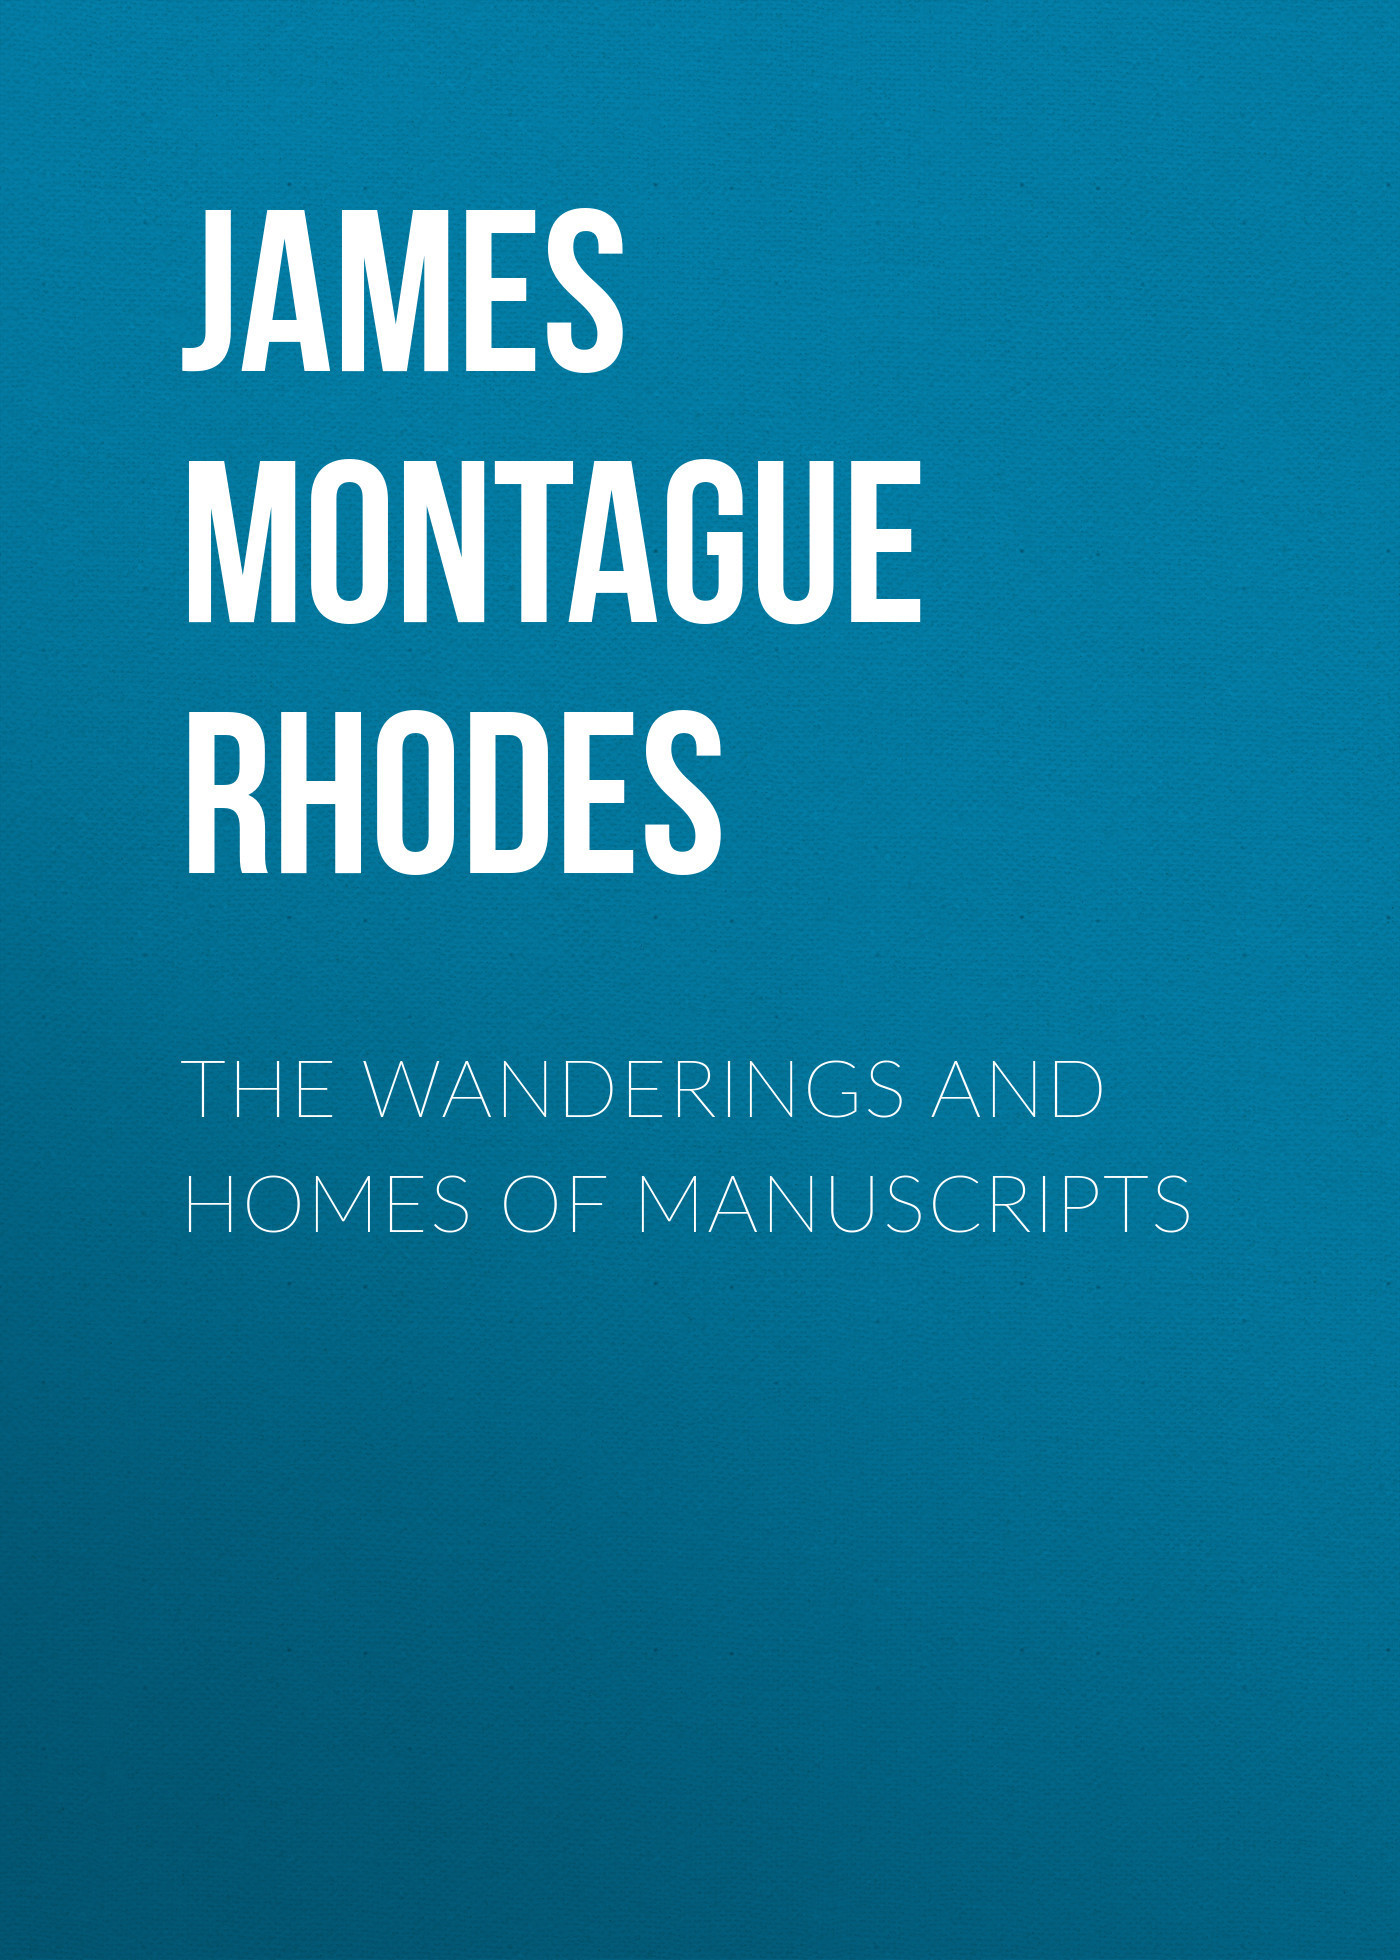 James Montague Rhodes The Wanderings and Homes of Manuscripts